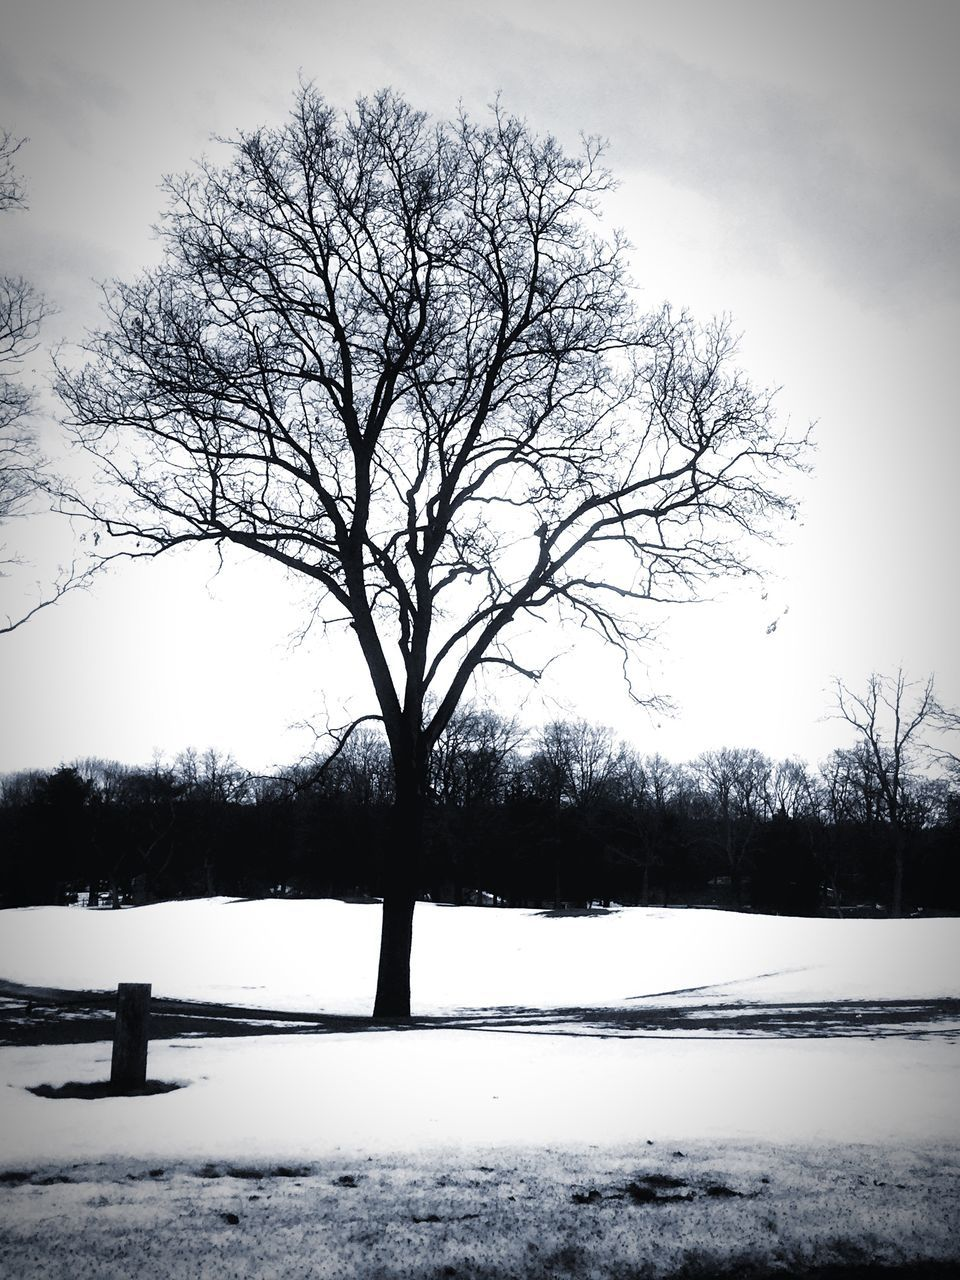 winter, snow, cold temperature, bare tree, tree, nature, weather, tranquility, beauty in nature, cold, tranquil scene, landscape, scenics, branch, outdoors, sky, no people, frozen, day, bleak